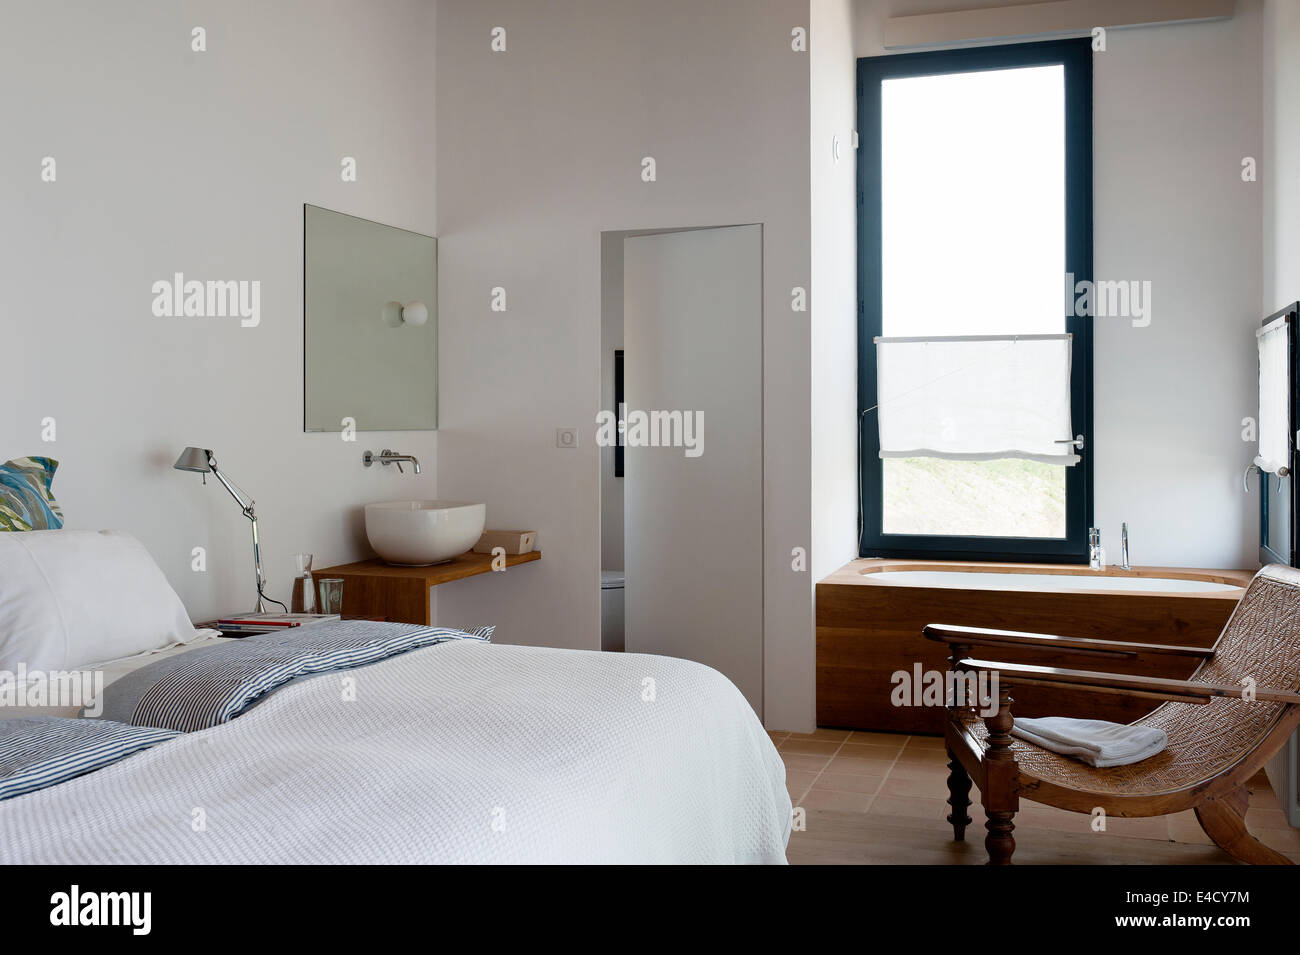 Modern Bedroom With Bath And Wash Basin Stock Photo